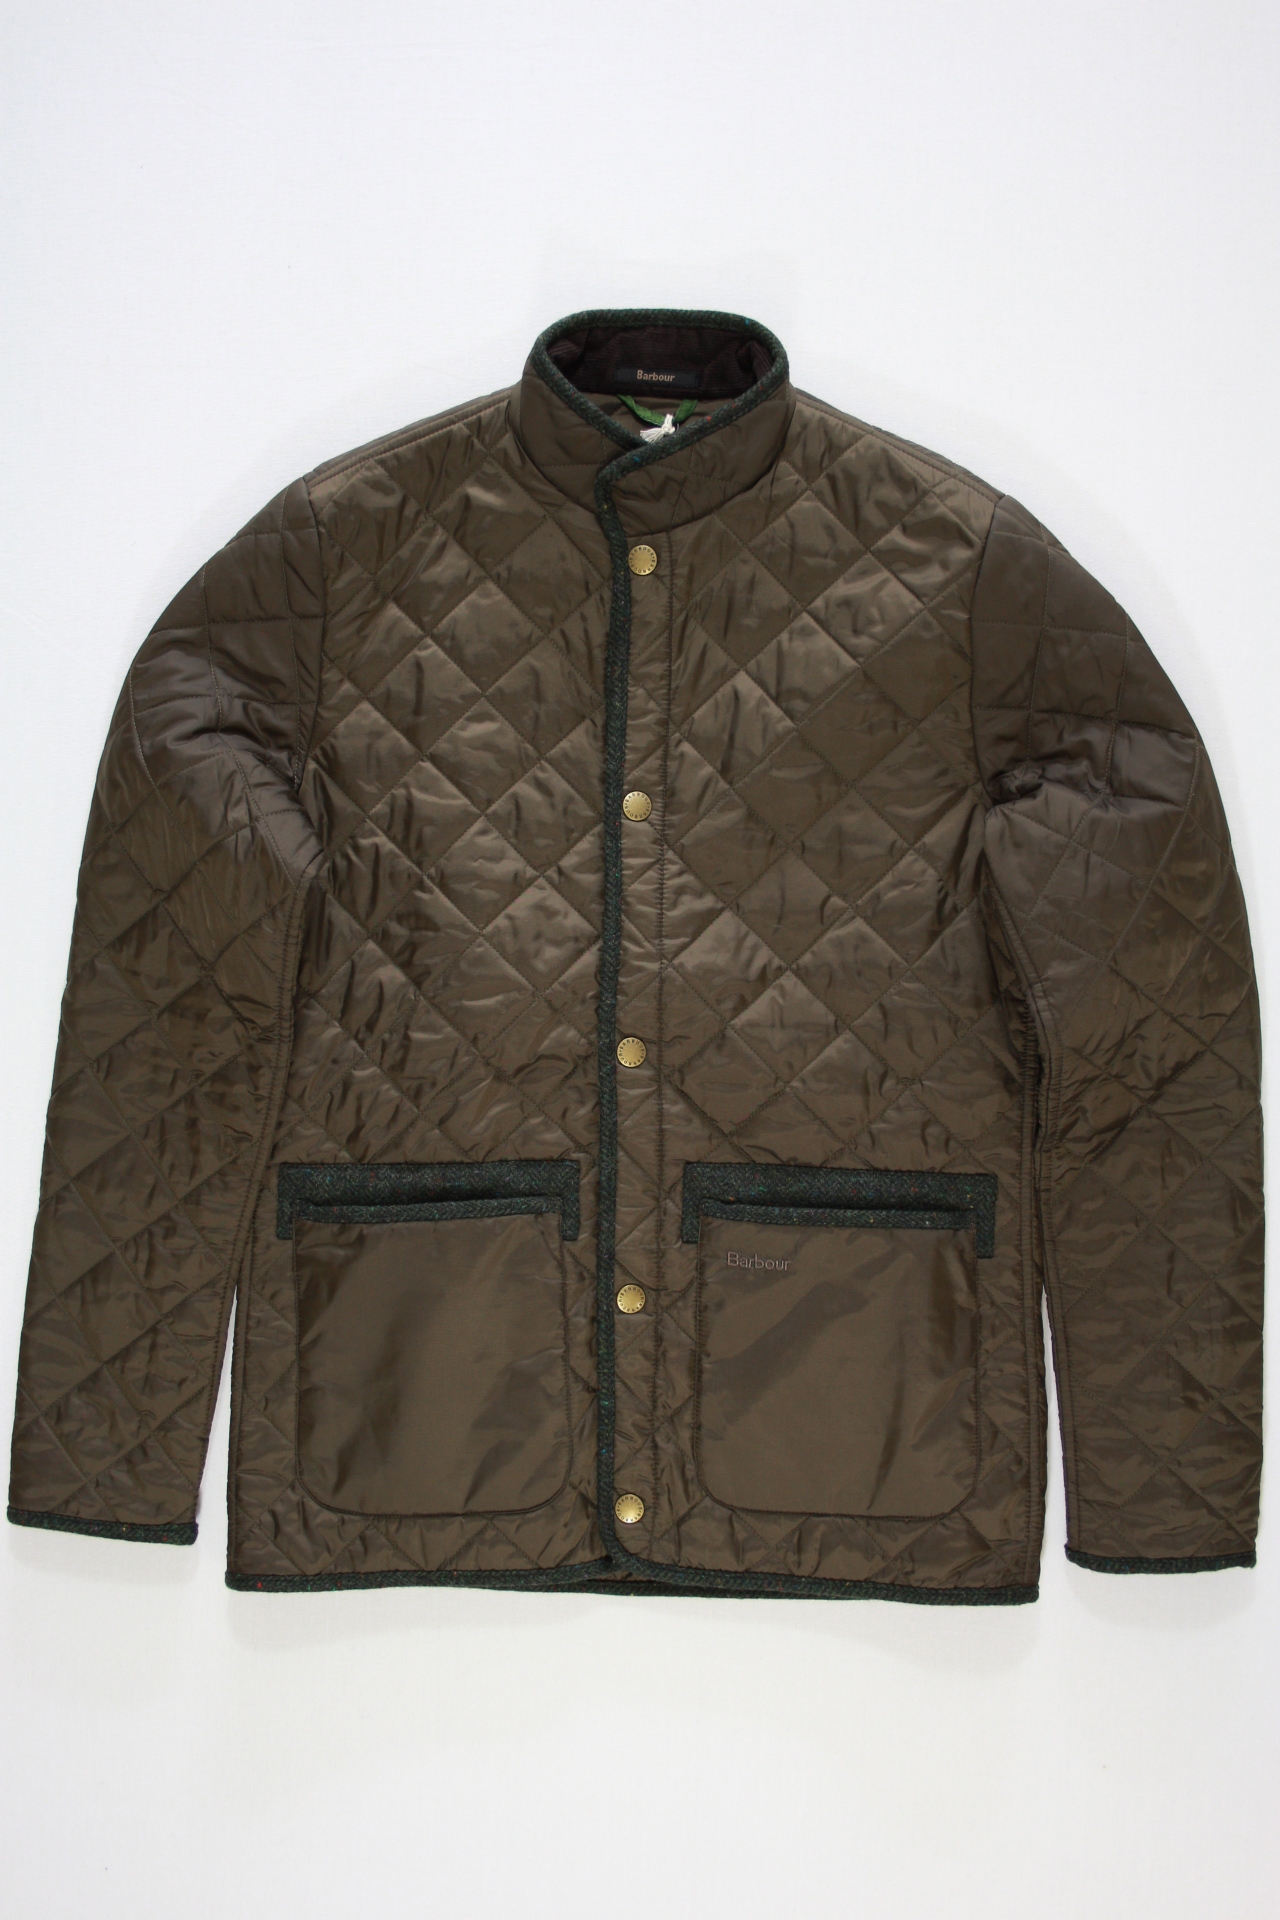 Barbour Jas Tweed Liddesdale Groen